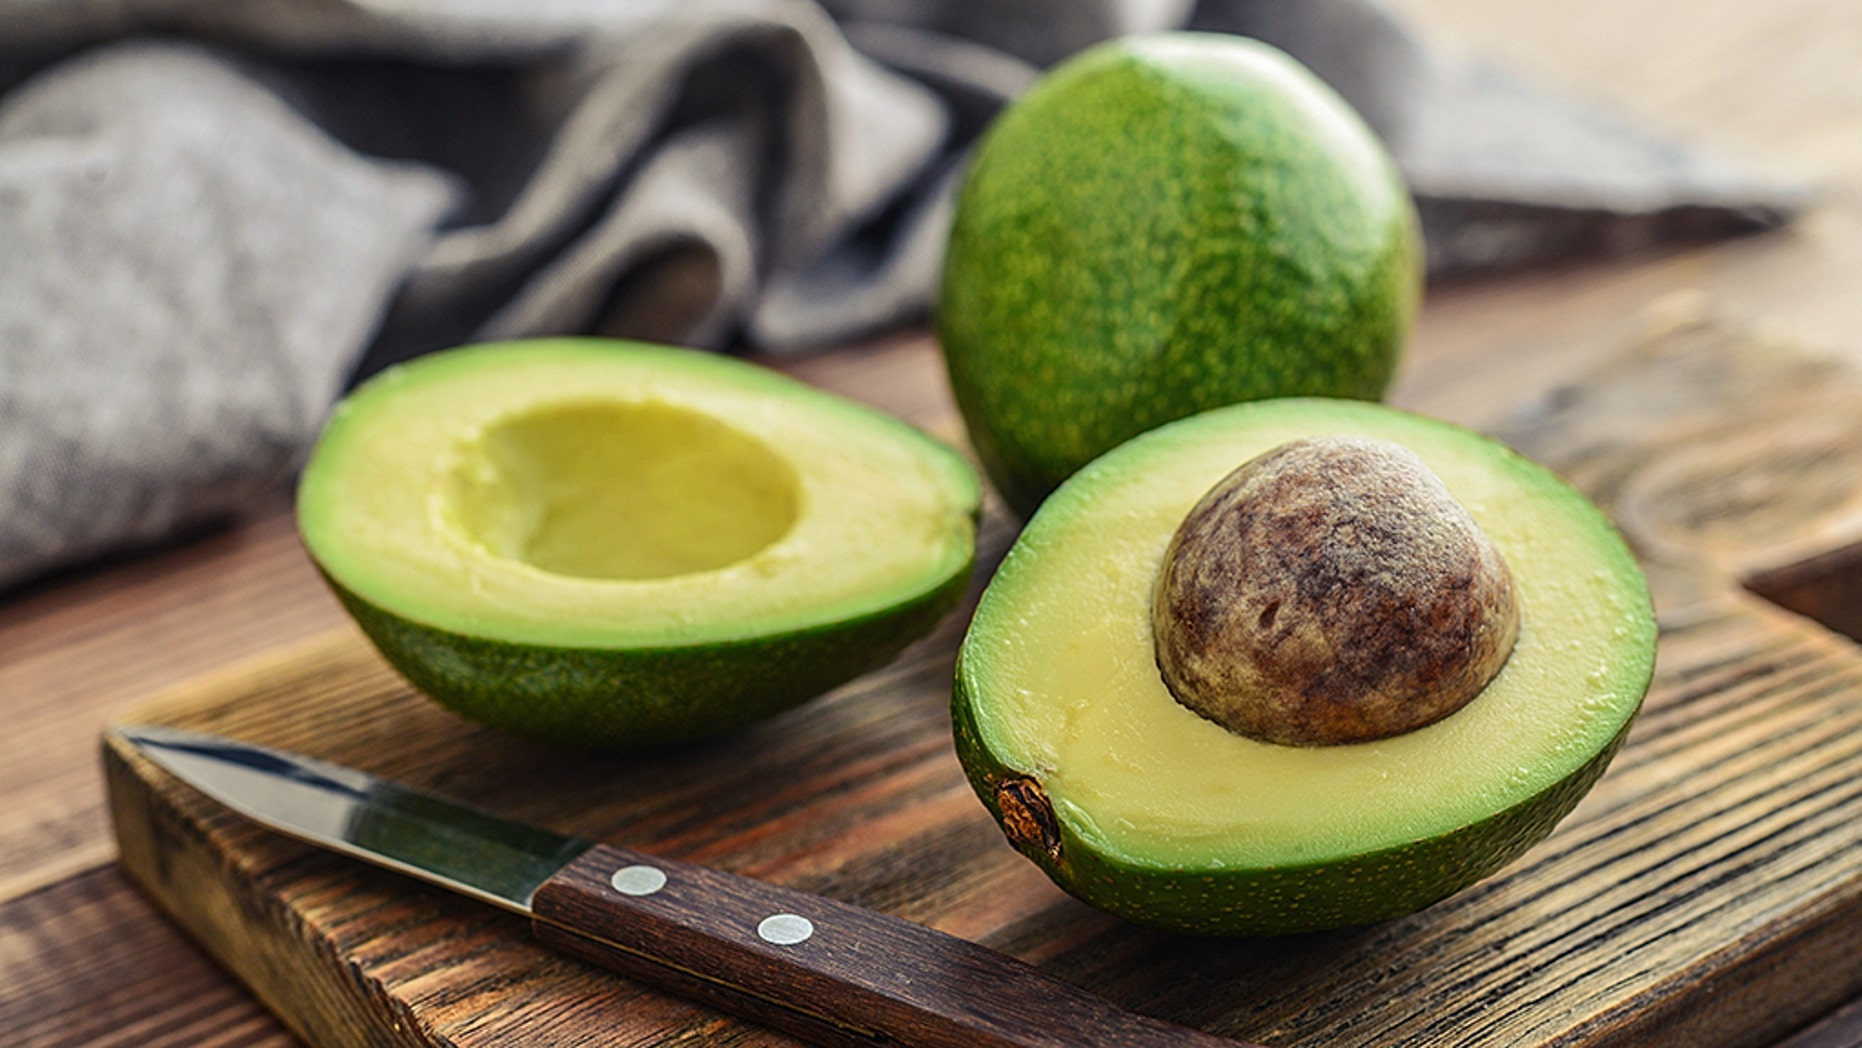 Everyone in the study reported feeling fuller longer after the meal featuring a whole avocado; even the meal with half an avocado helped satisfy the volunteers longer than the low-fat meal.